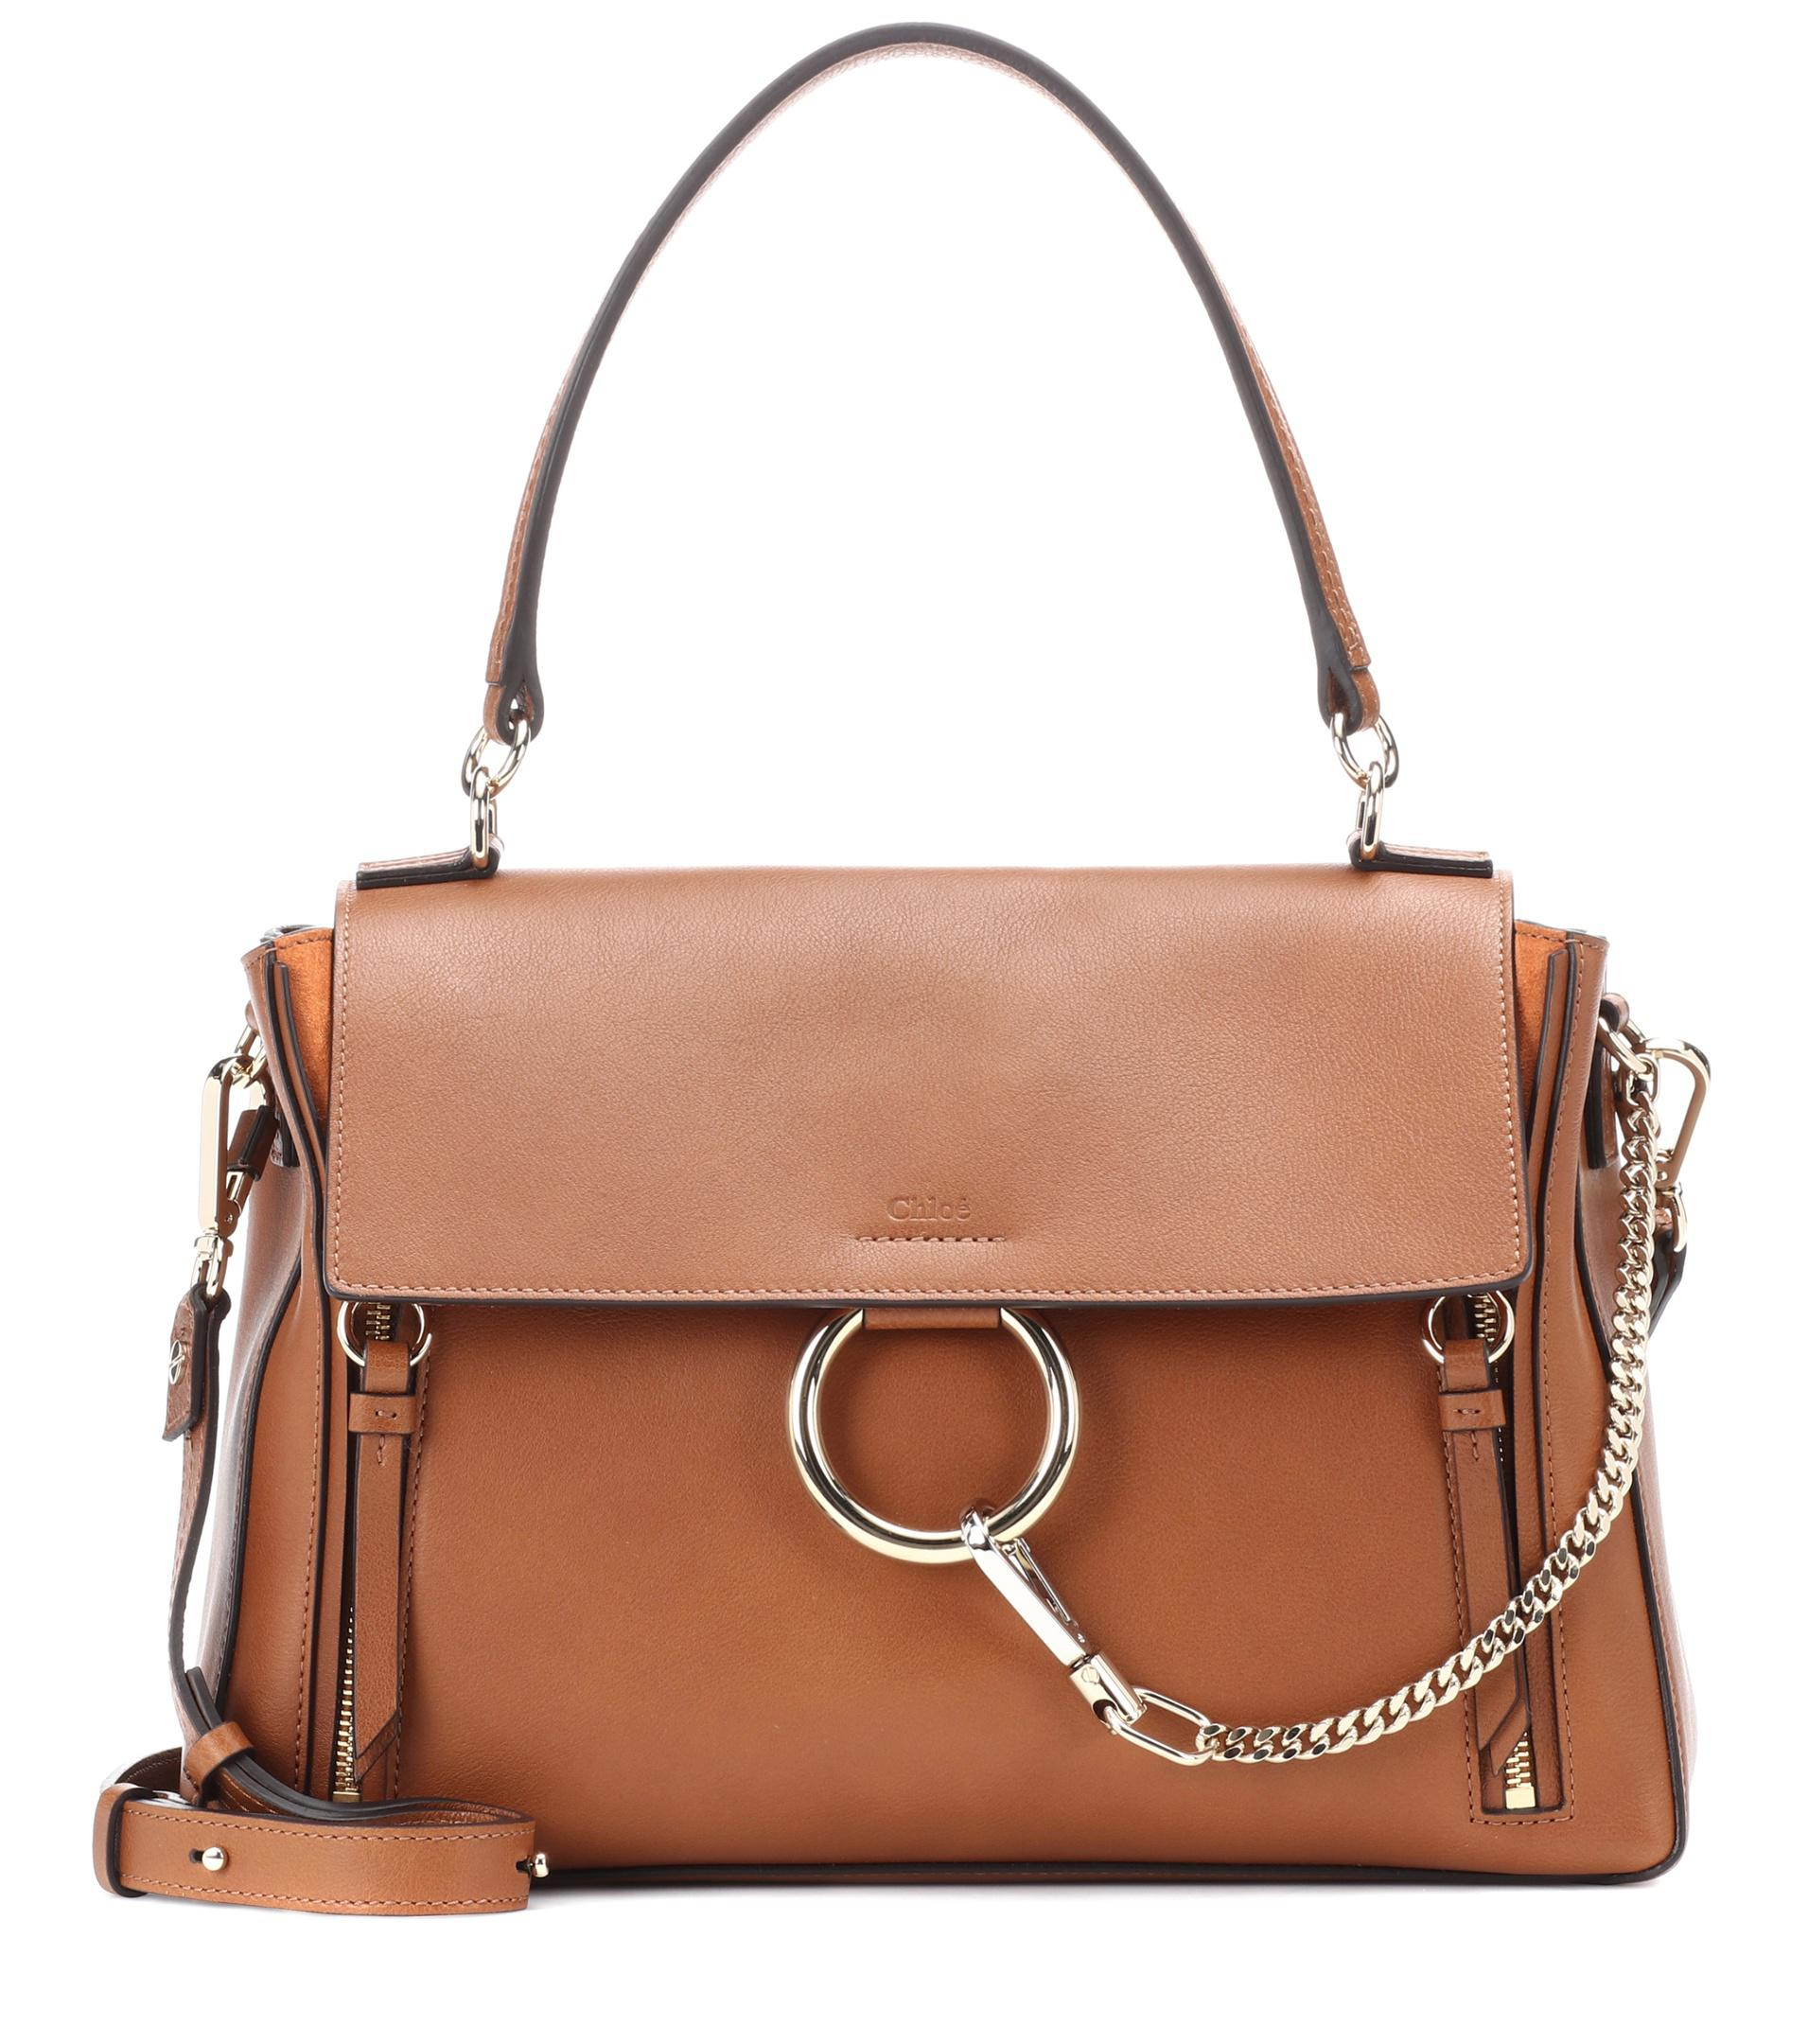 Lyst - Sac à bandoulière en cuir Faye Day Medium Chloé en coloris Marron f92002e2581